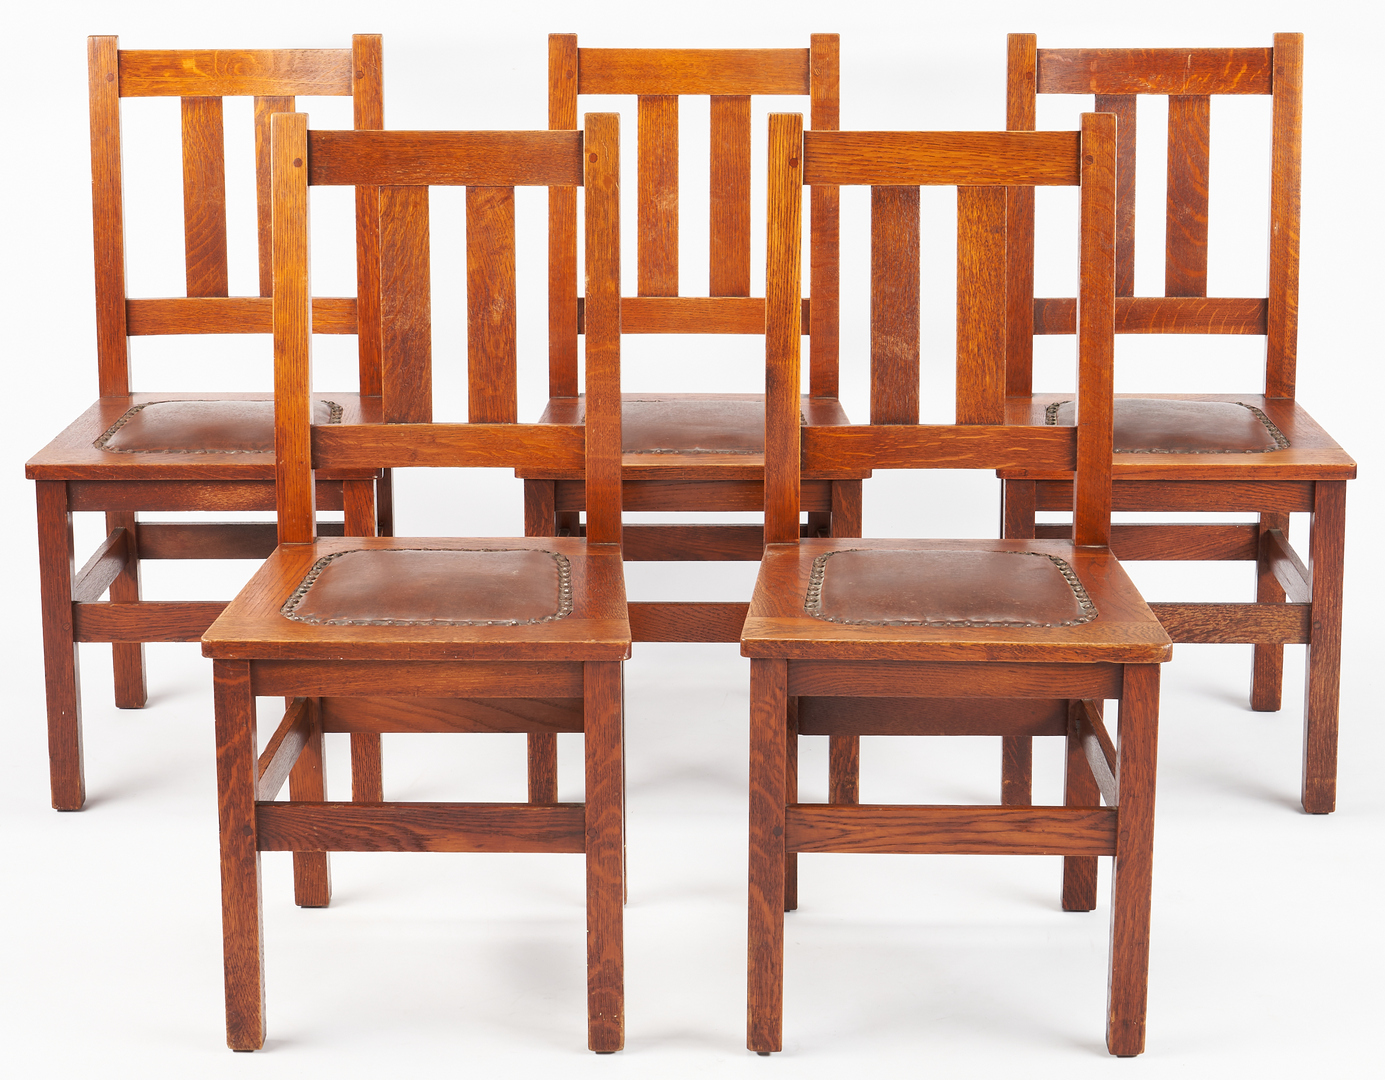 Lot 532: 6 Stickley Brothers Arts & Crafts Dining Chairs